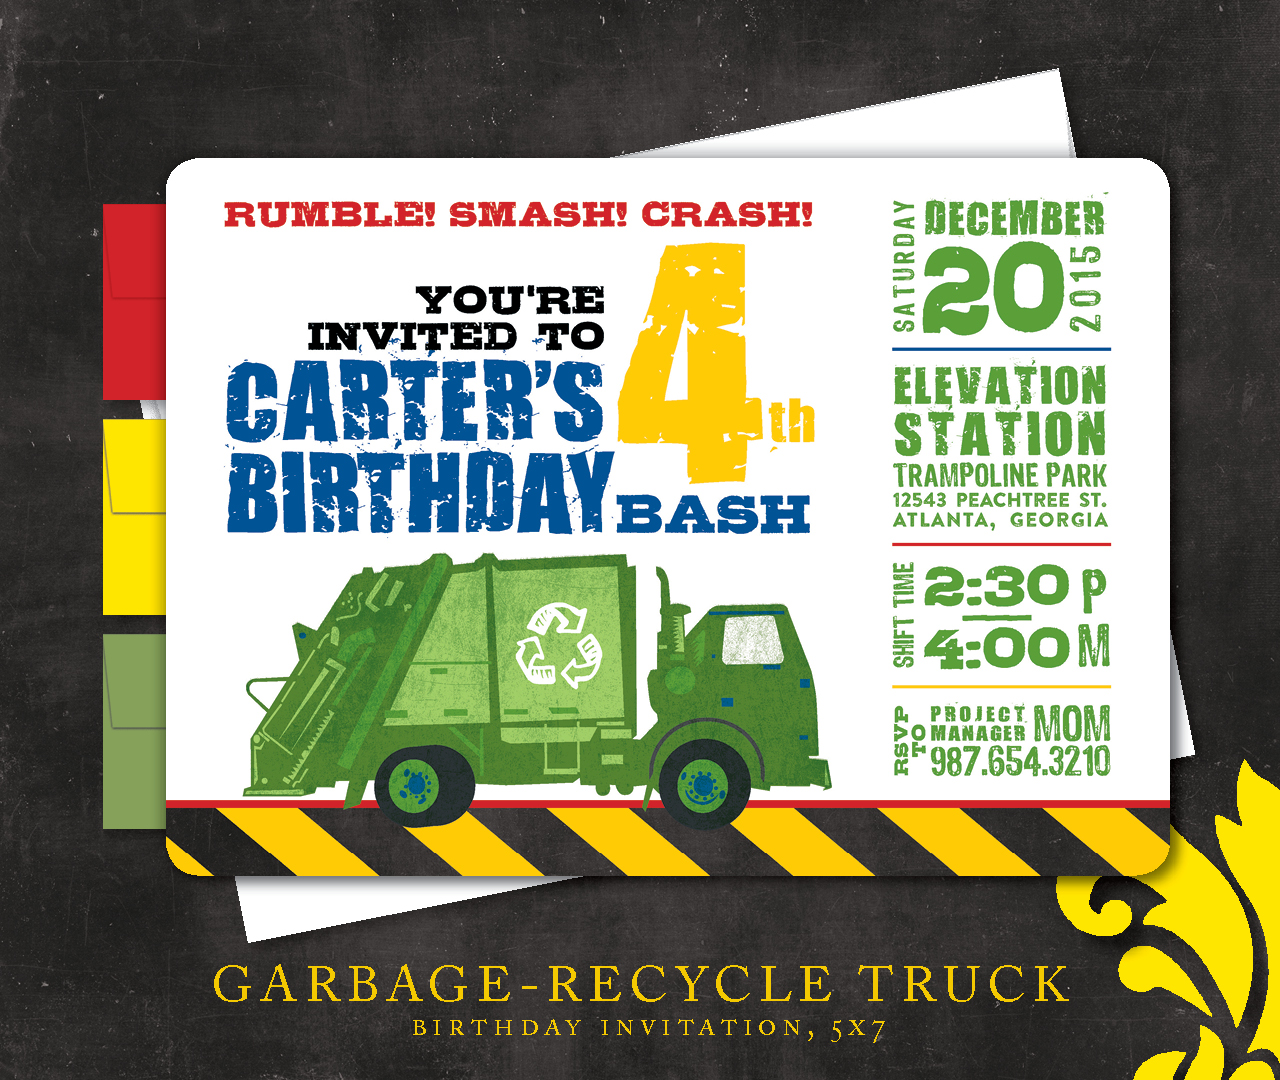 Nealon Design GARBAGE Recycle Truck Birthday Invitation